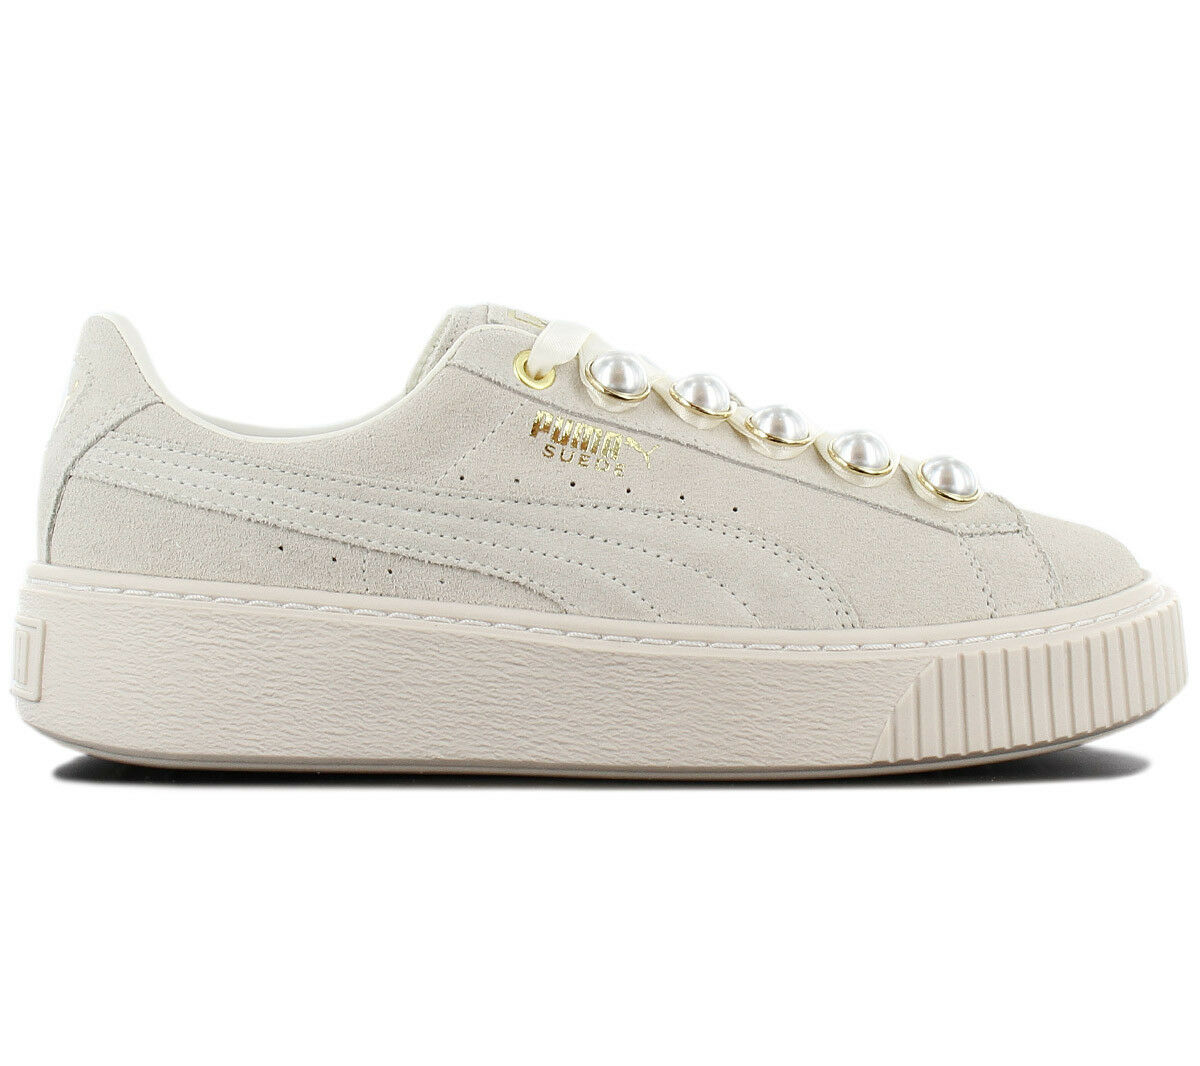 Puma Suede Platform Bling Sneaker Women's shoes Grey-White 366688-02 Trainers